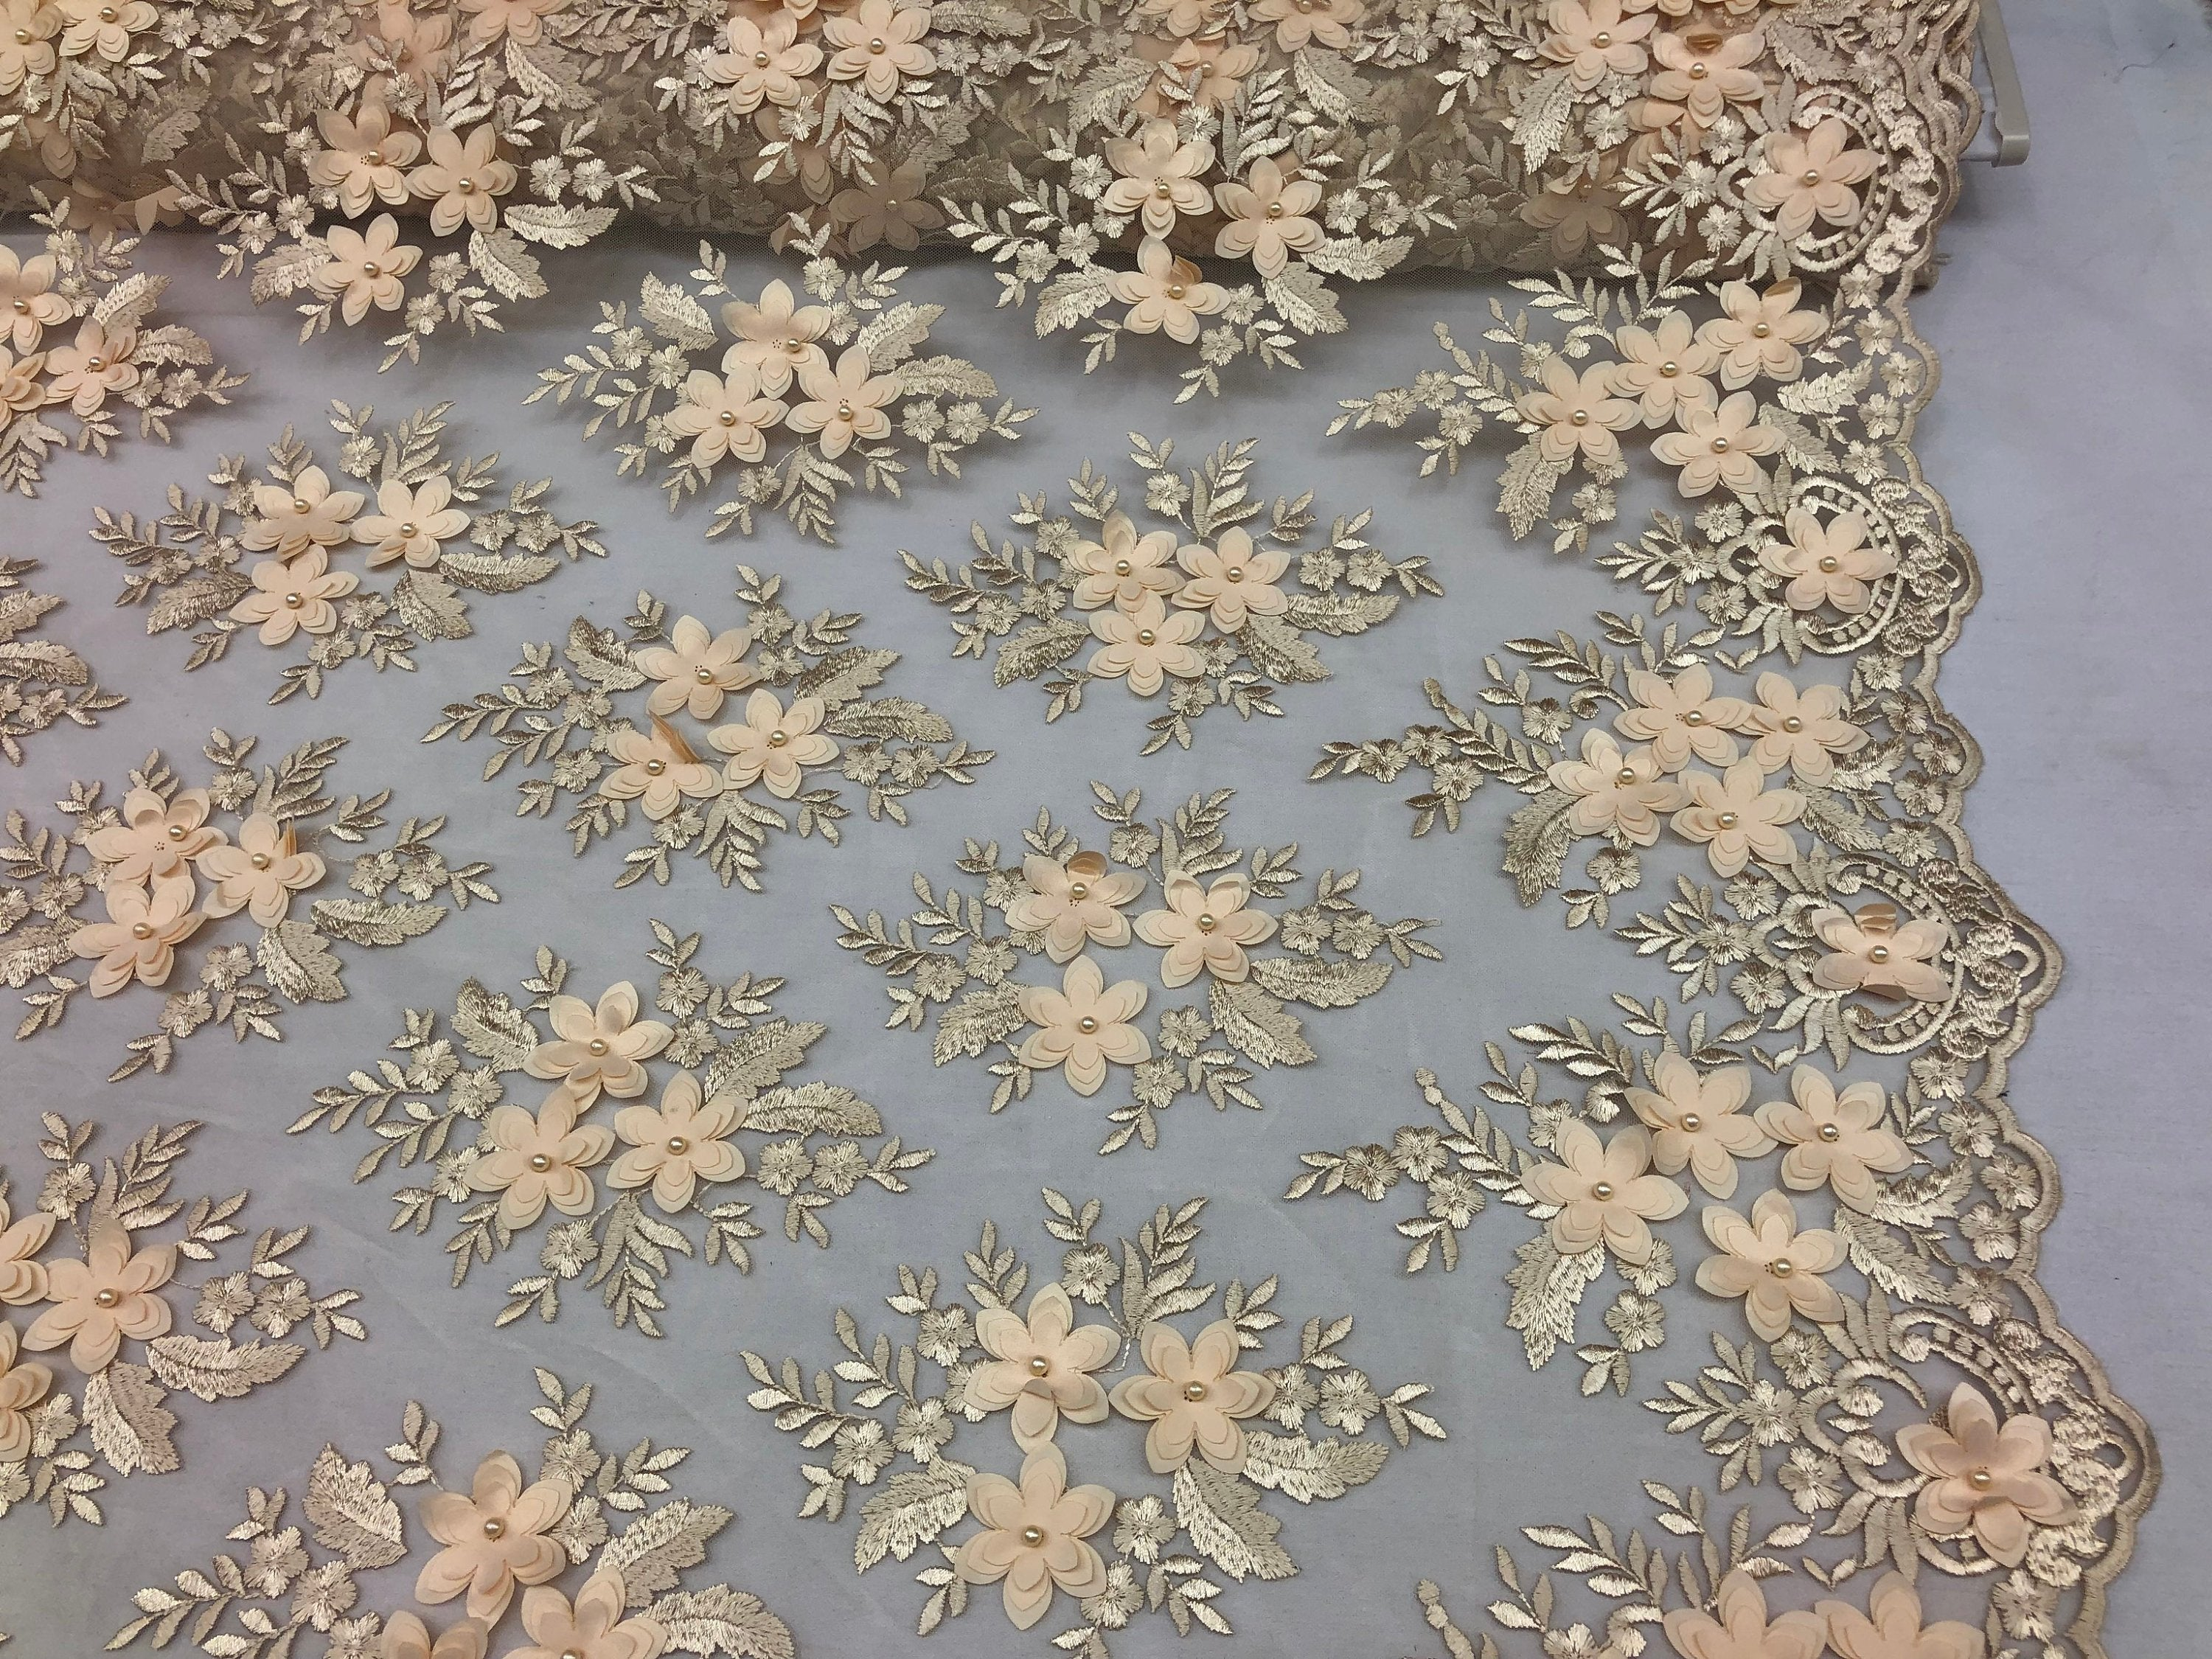 Wedding Lace Fabric - Hand Embroidered Flower 3D Pearls - CHAMPAGNE - For Bridal Veil Mesh Dress Top - Decoration By The Yard